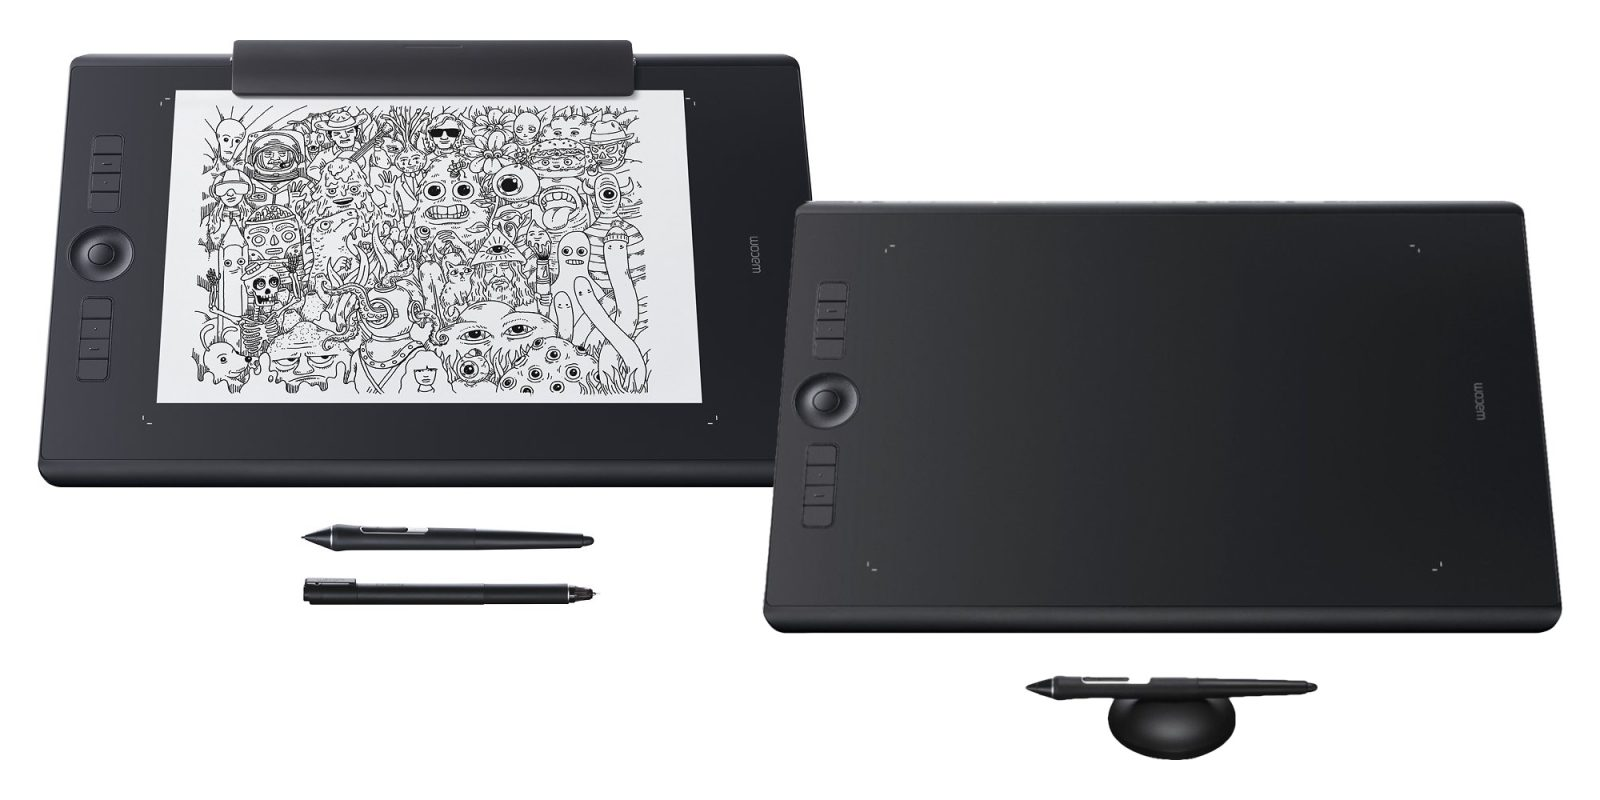 Wacom Intuos Pro Large Tablet gets 20% discount to $400, more from $350